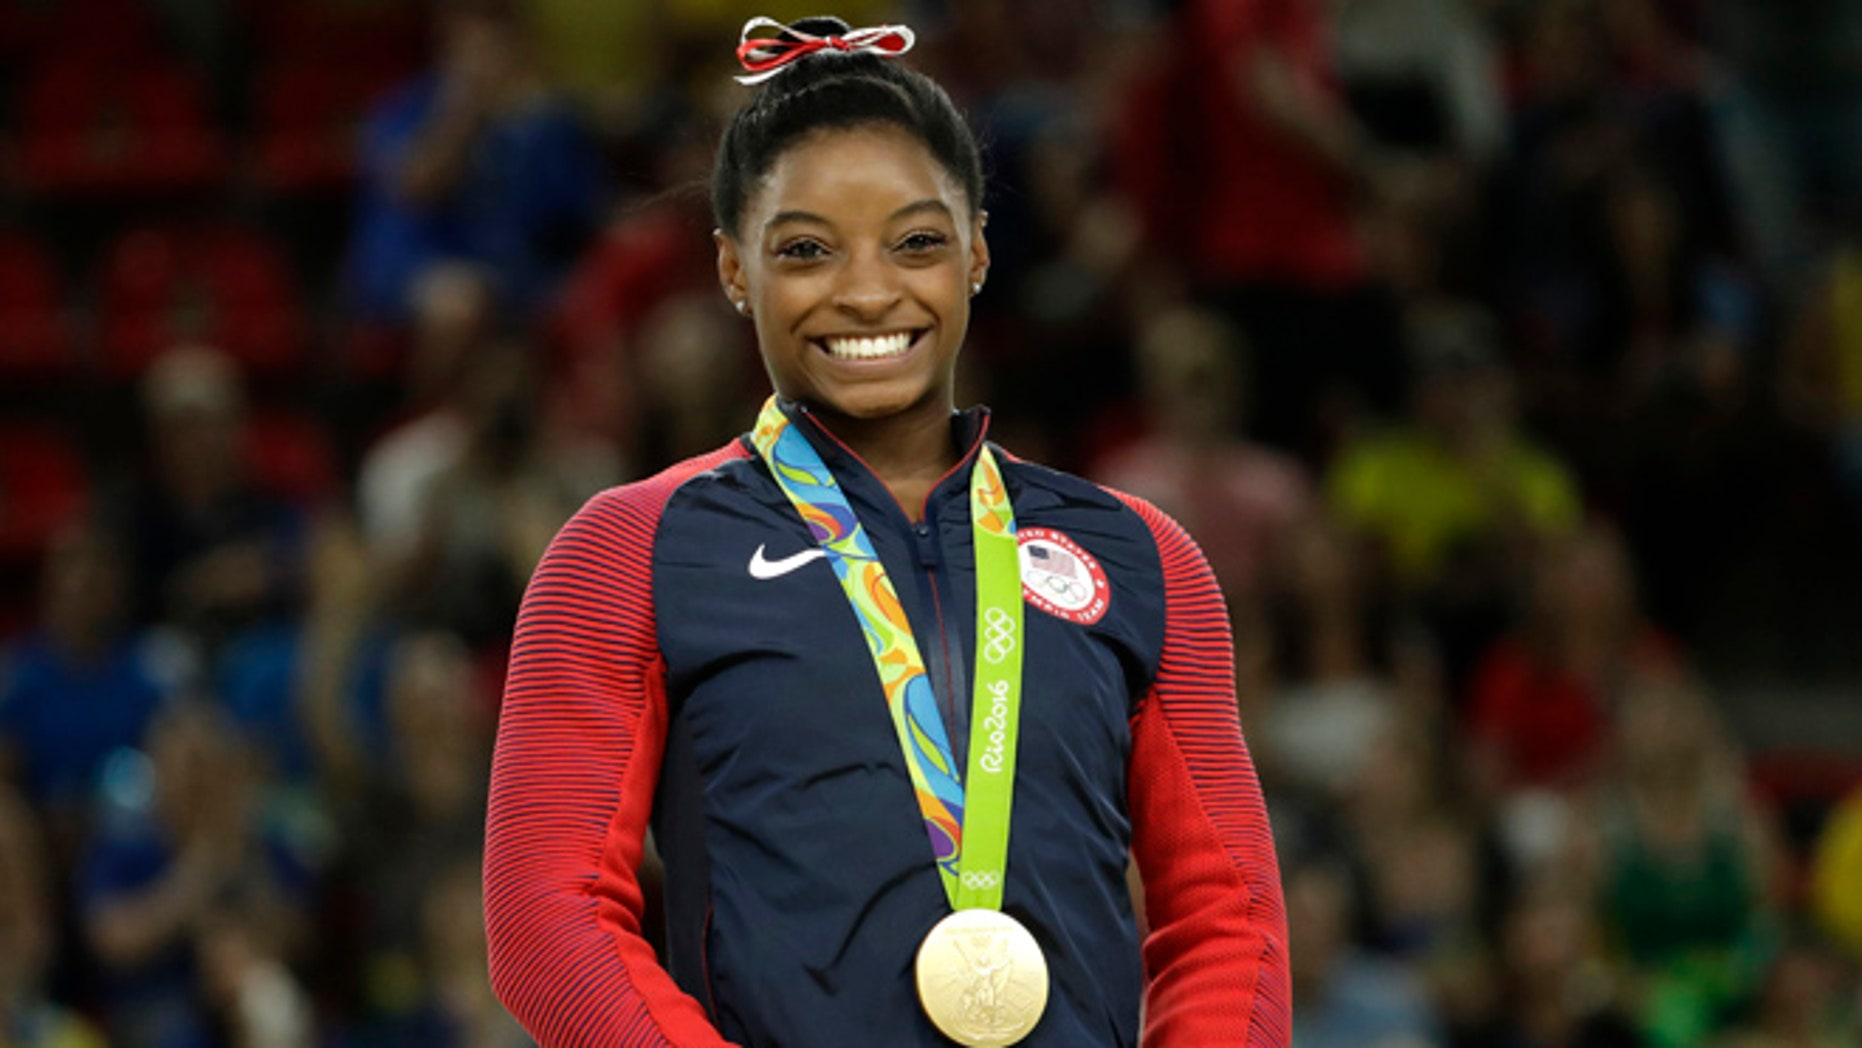 United States' Simone Biles smiles on the podium after winning vault gold during the artistic gymnastics women's apparatus final at the 2016 Summer Olympics in Rio de Janeiro, Brazil, Sunday, Aug. 14, 2016.